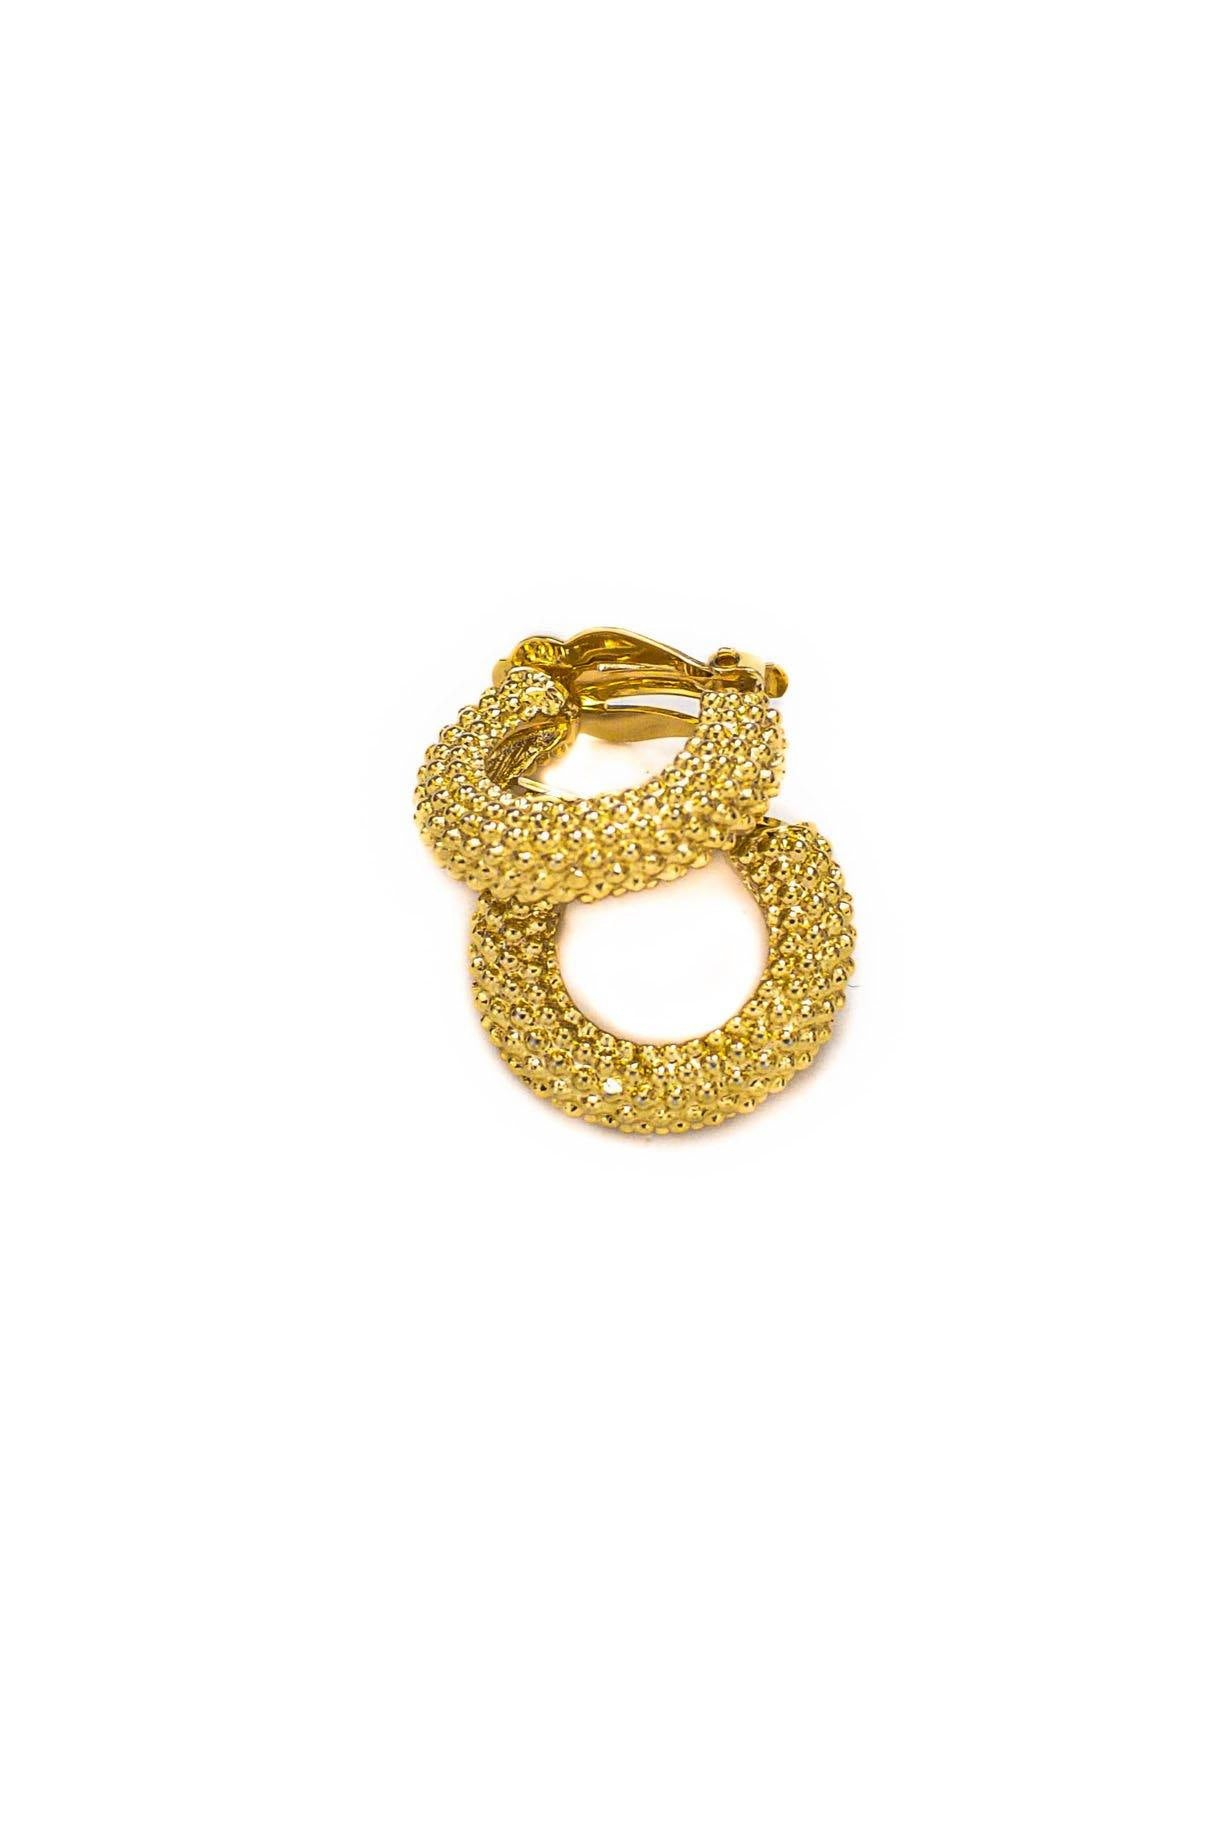 Vintage Givenchy Textured Clip-on Hoop Earrings from Sweet and Spark